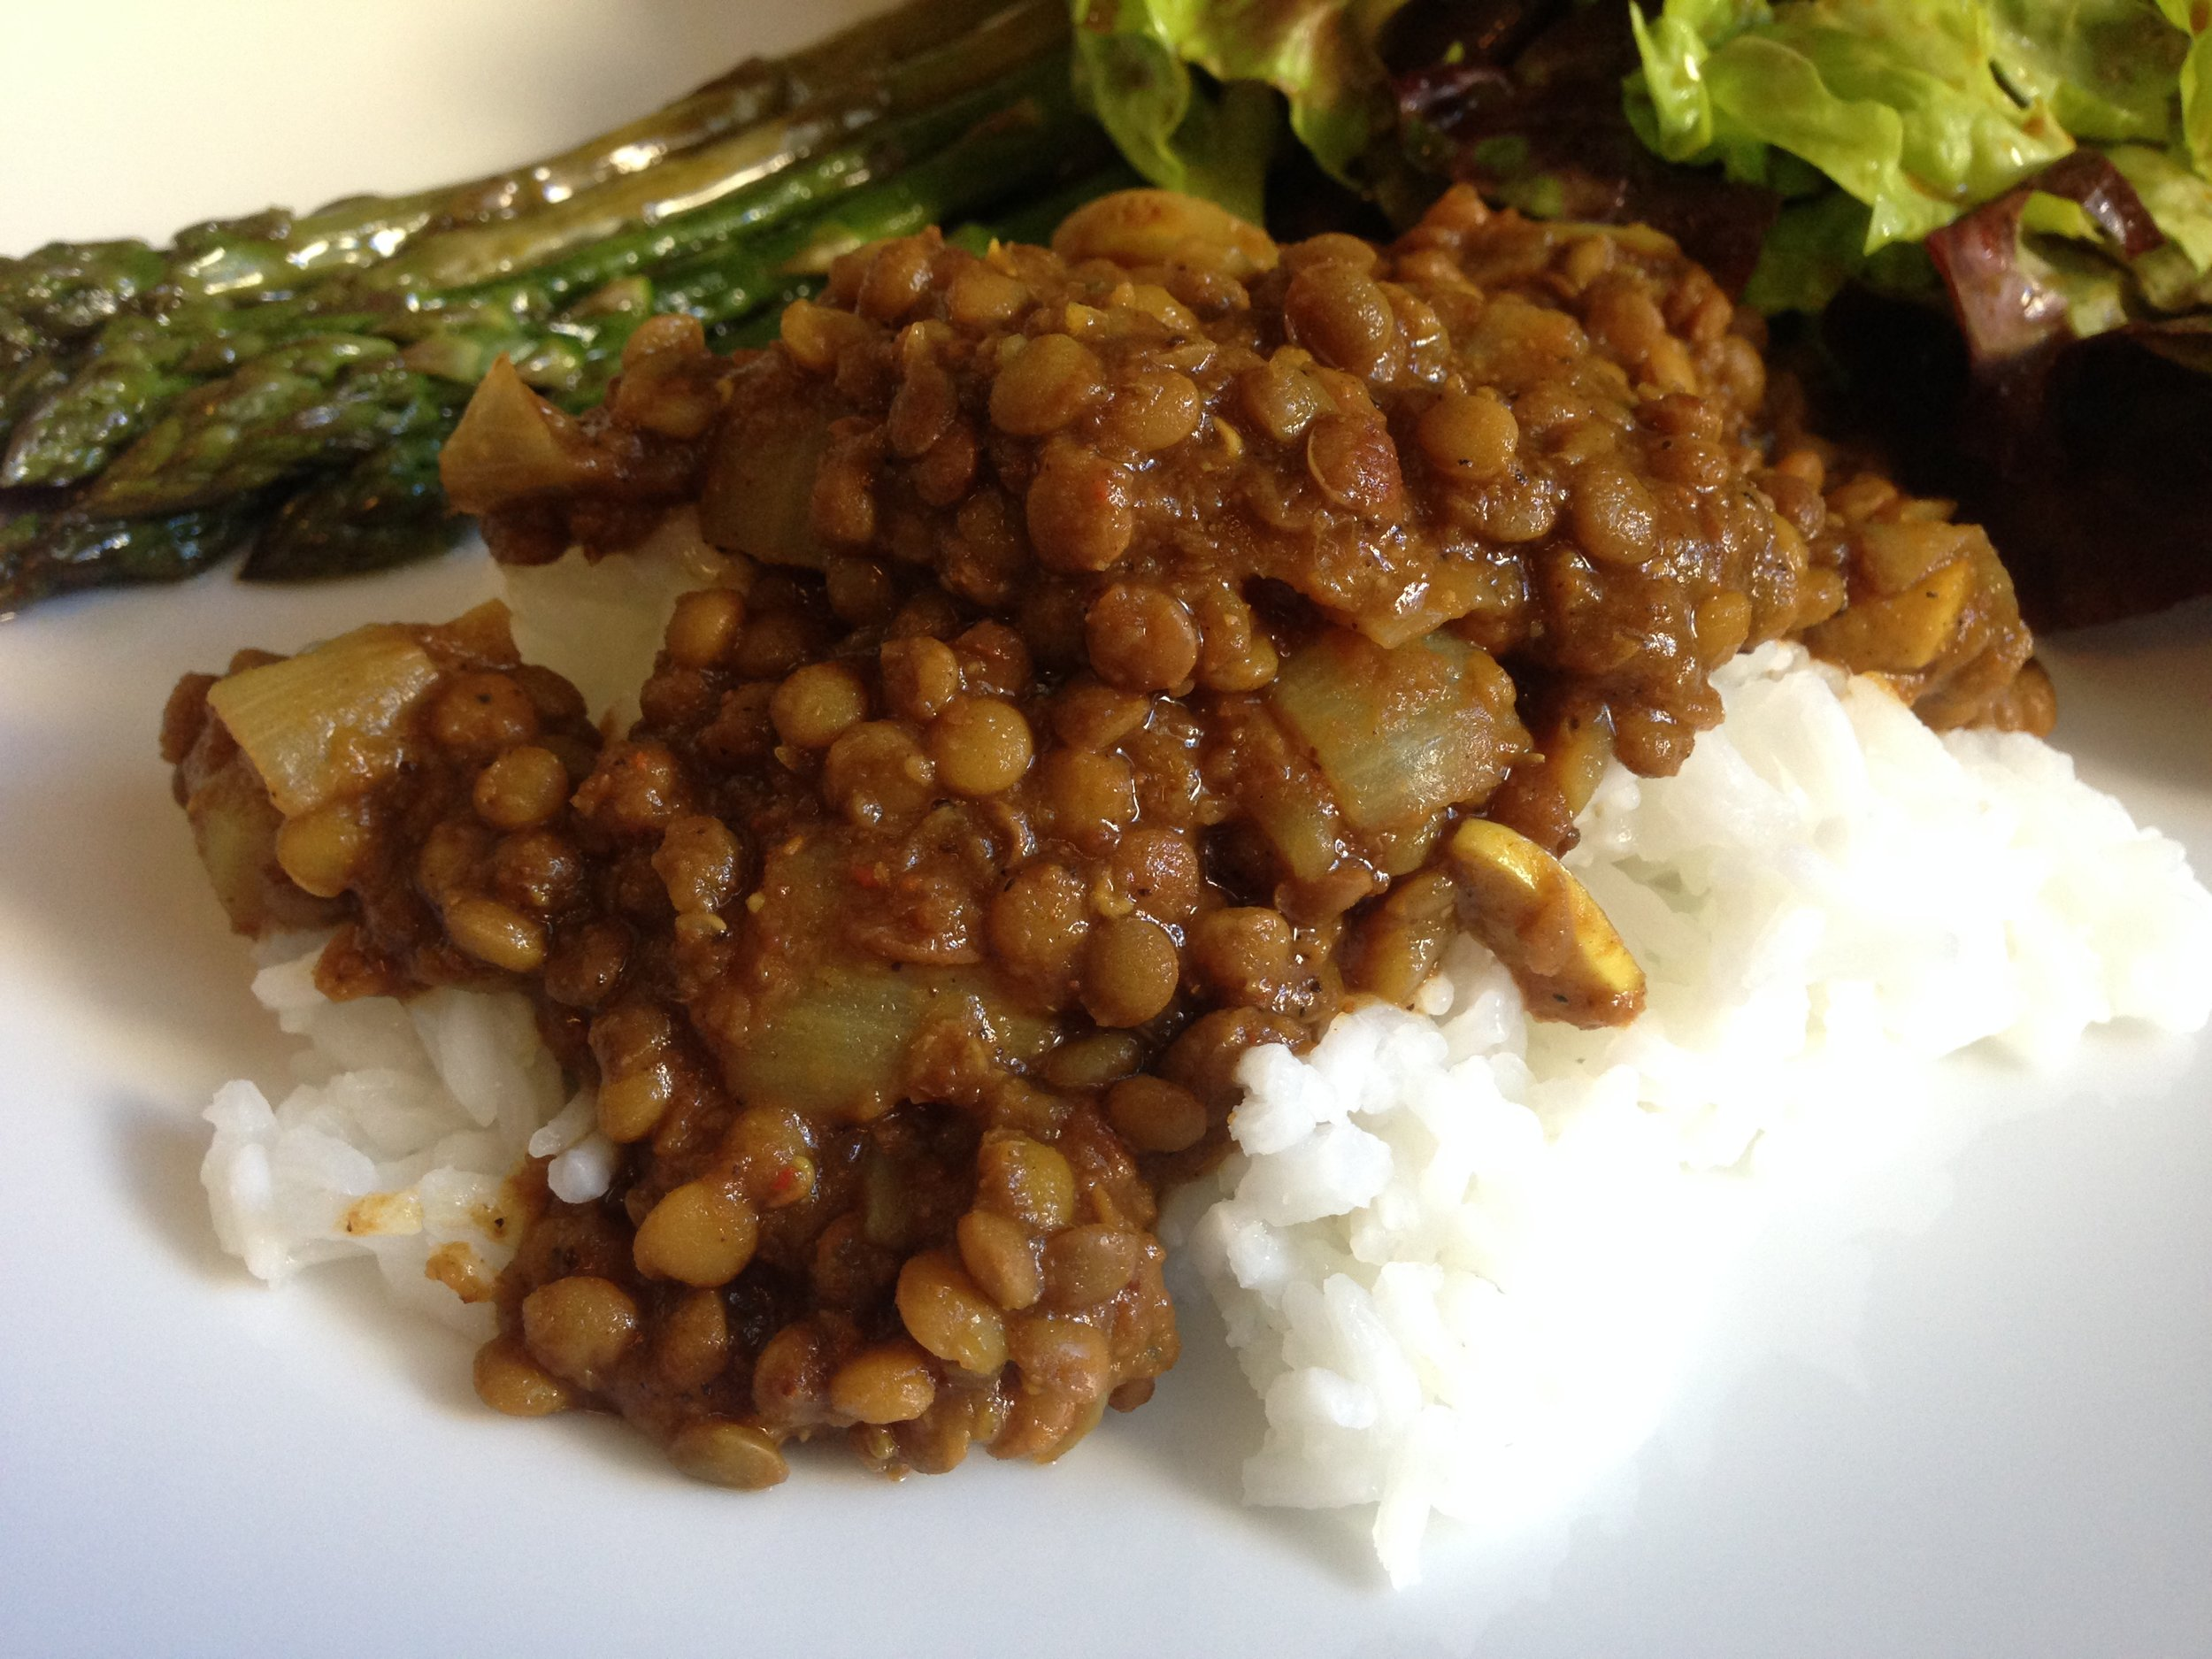 Lentil Stew in Berbere Spice over Rice.